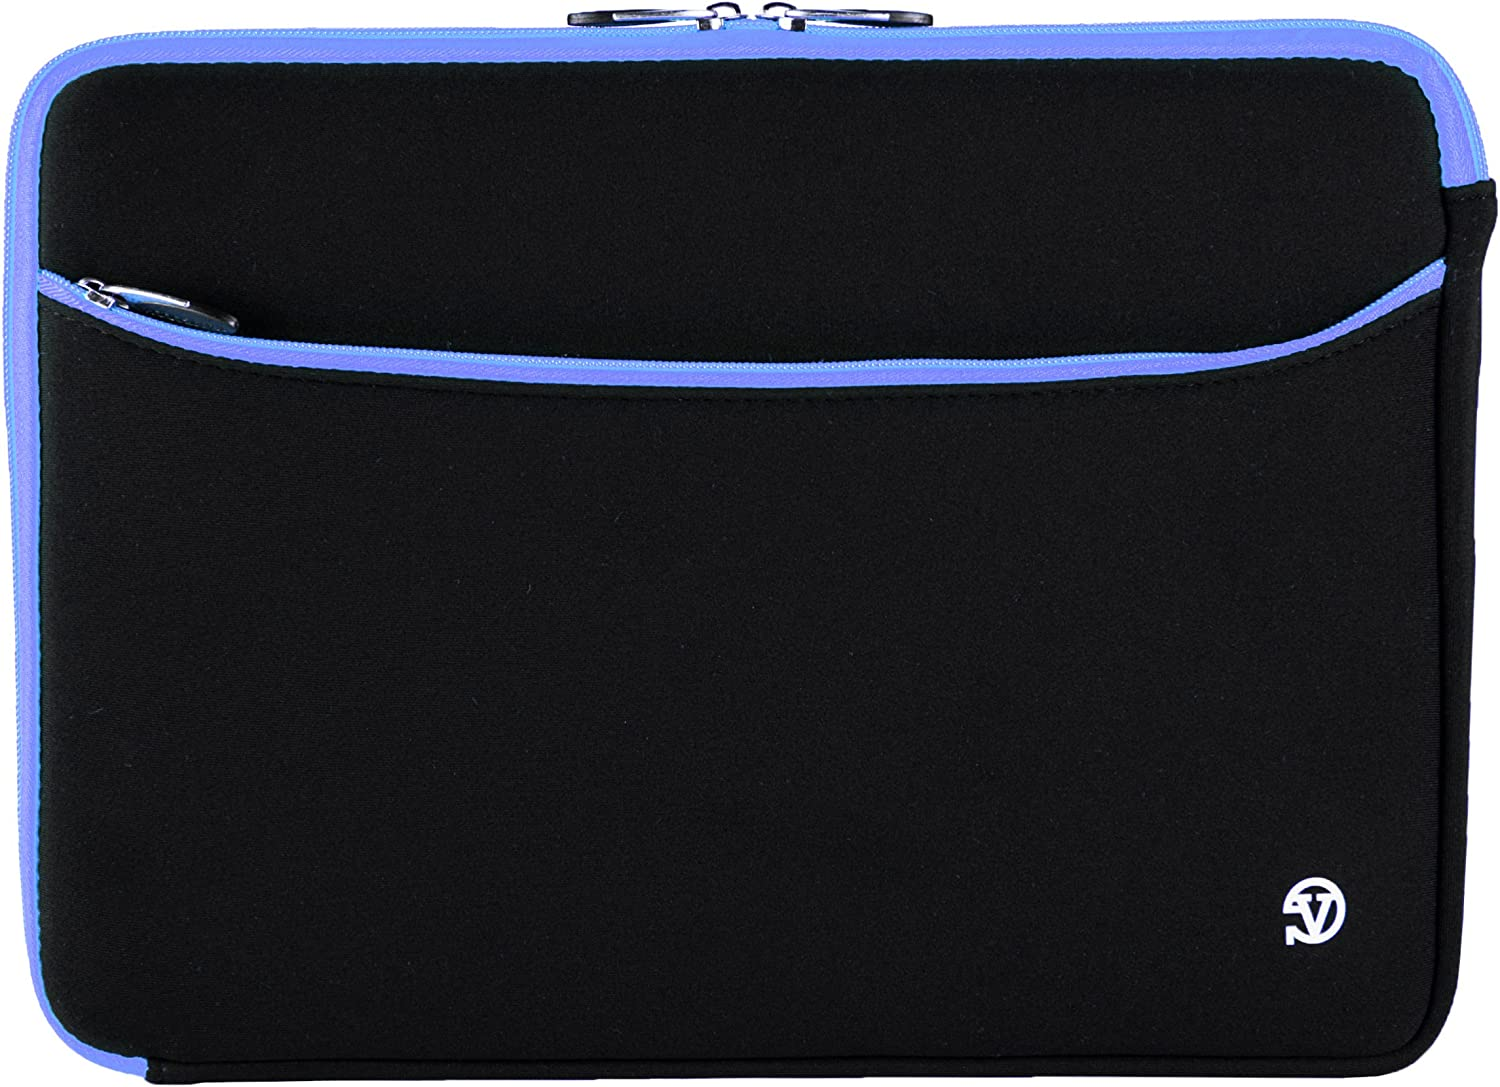 17.3 Inch Laptop Sleeve Pouch Carrying Case Tablet Cover for HP Envy 17, Omen 17t, ProBook, Lenovo IdeaPad, ThinkPad, MSI GL72M, Razer Blade Pro, Black, Blue